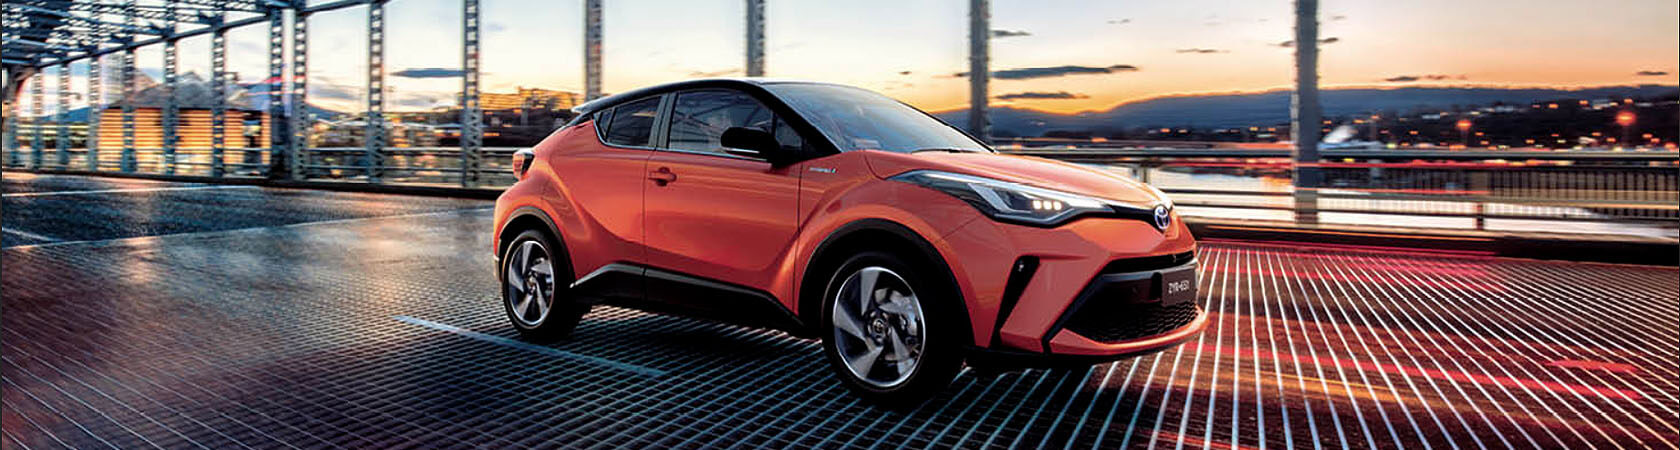 Wide Bay Toyota C-HR